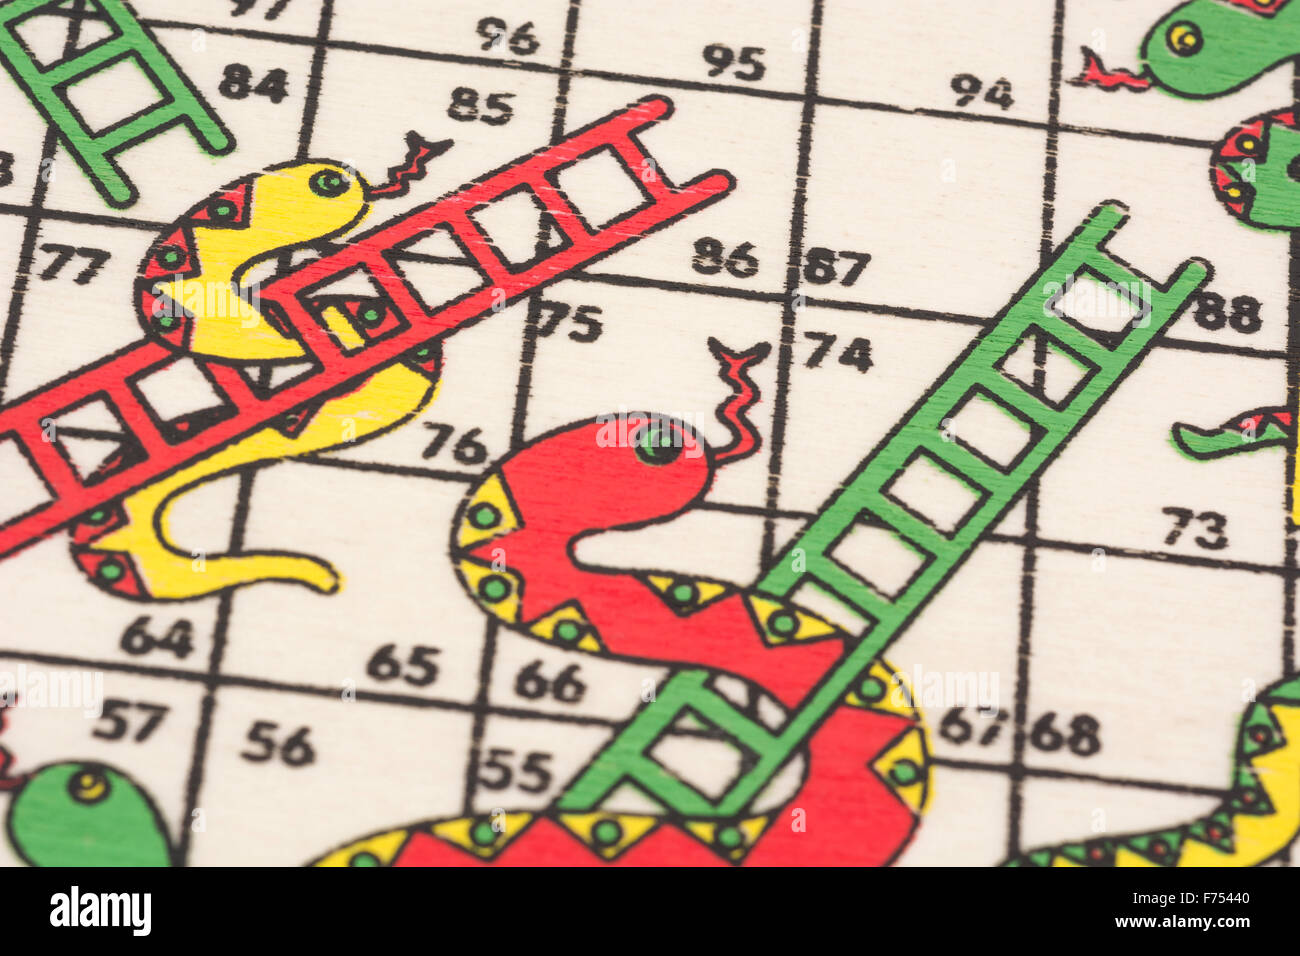 Close-up of a travelling 'Snakes and Ladders' board game ...